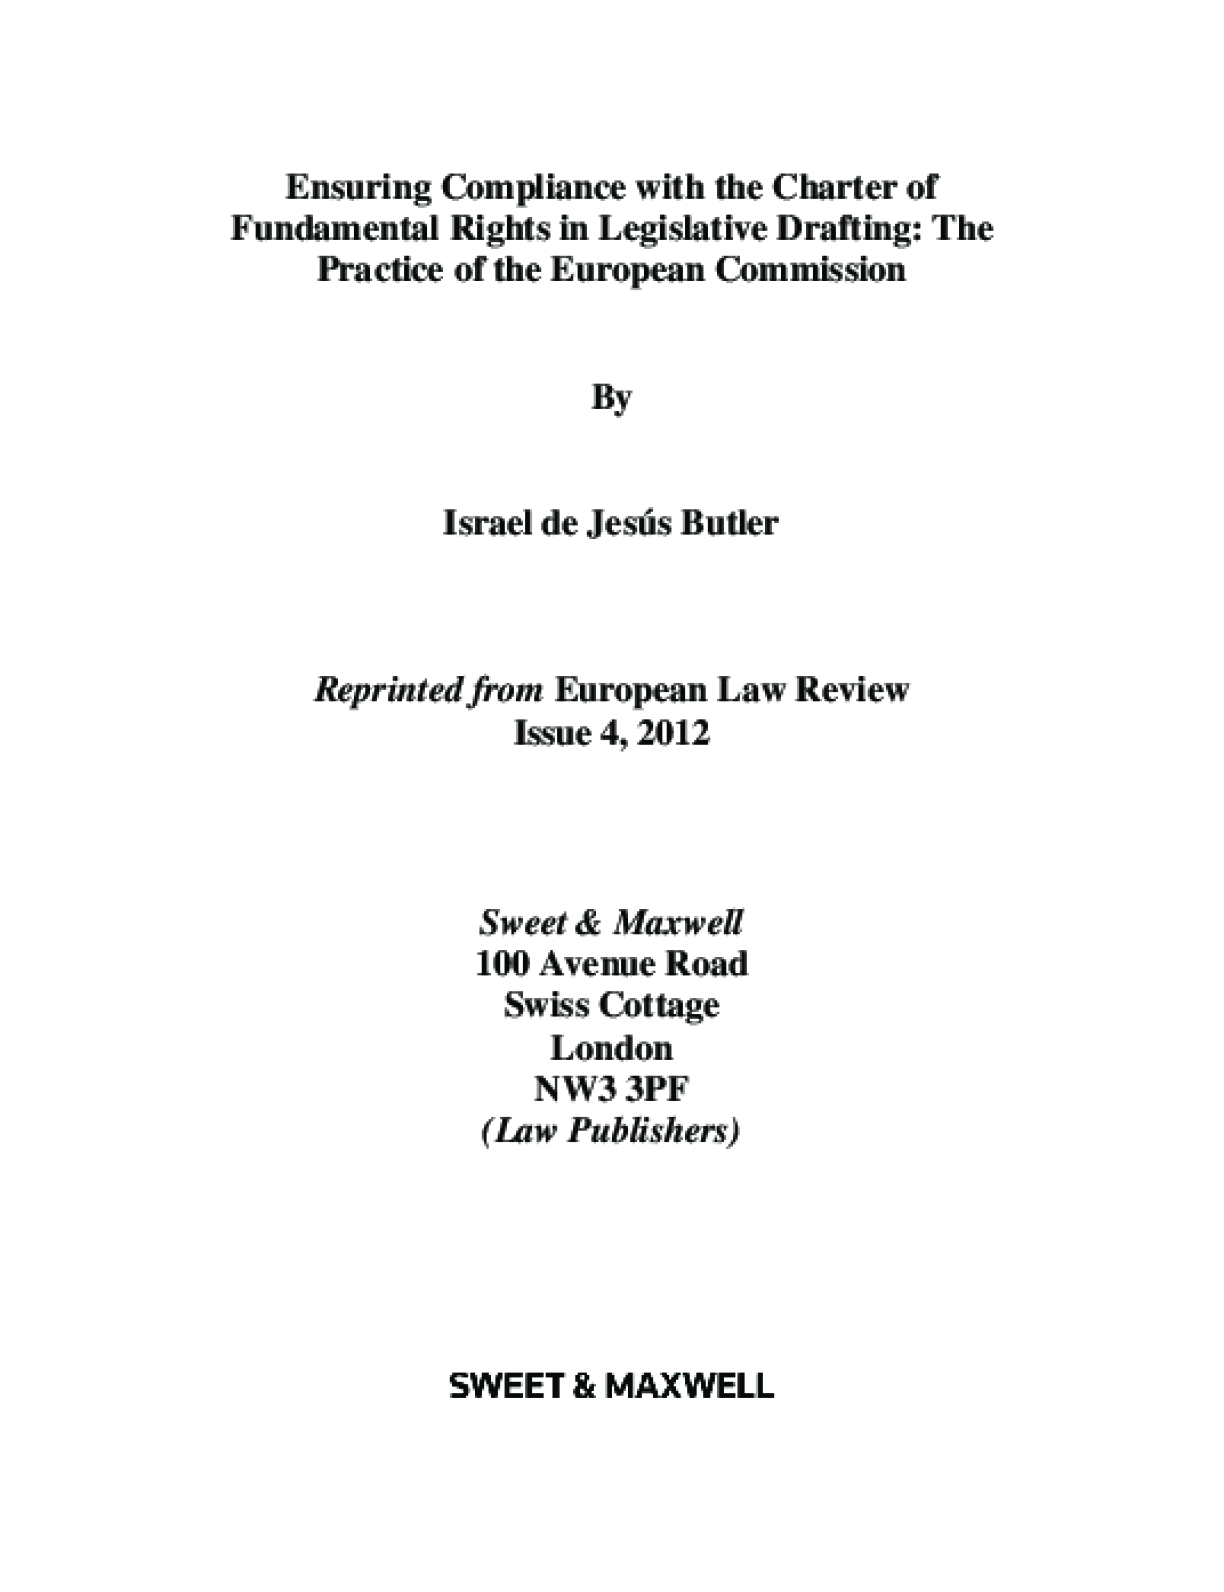 Ensuring Compliance with the Charter of Fundamental Rights in Legislative Drafting: The Practice of the European Commission